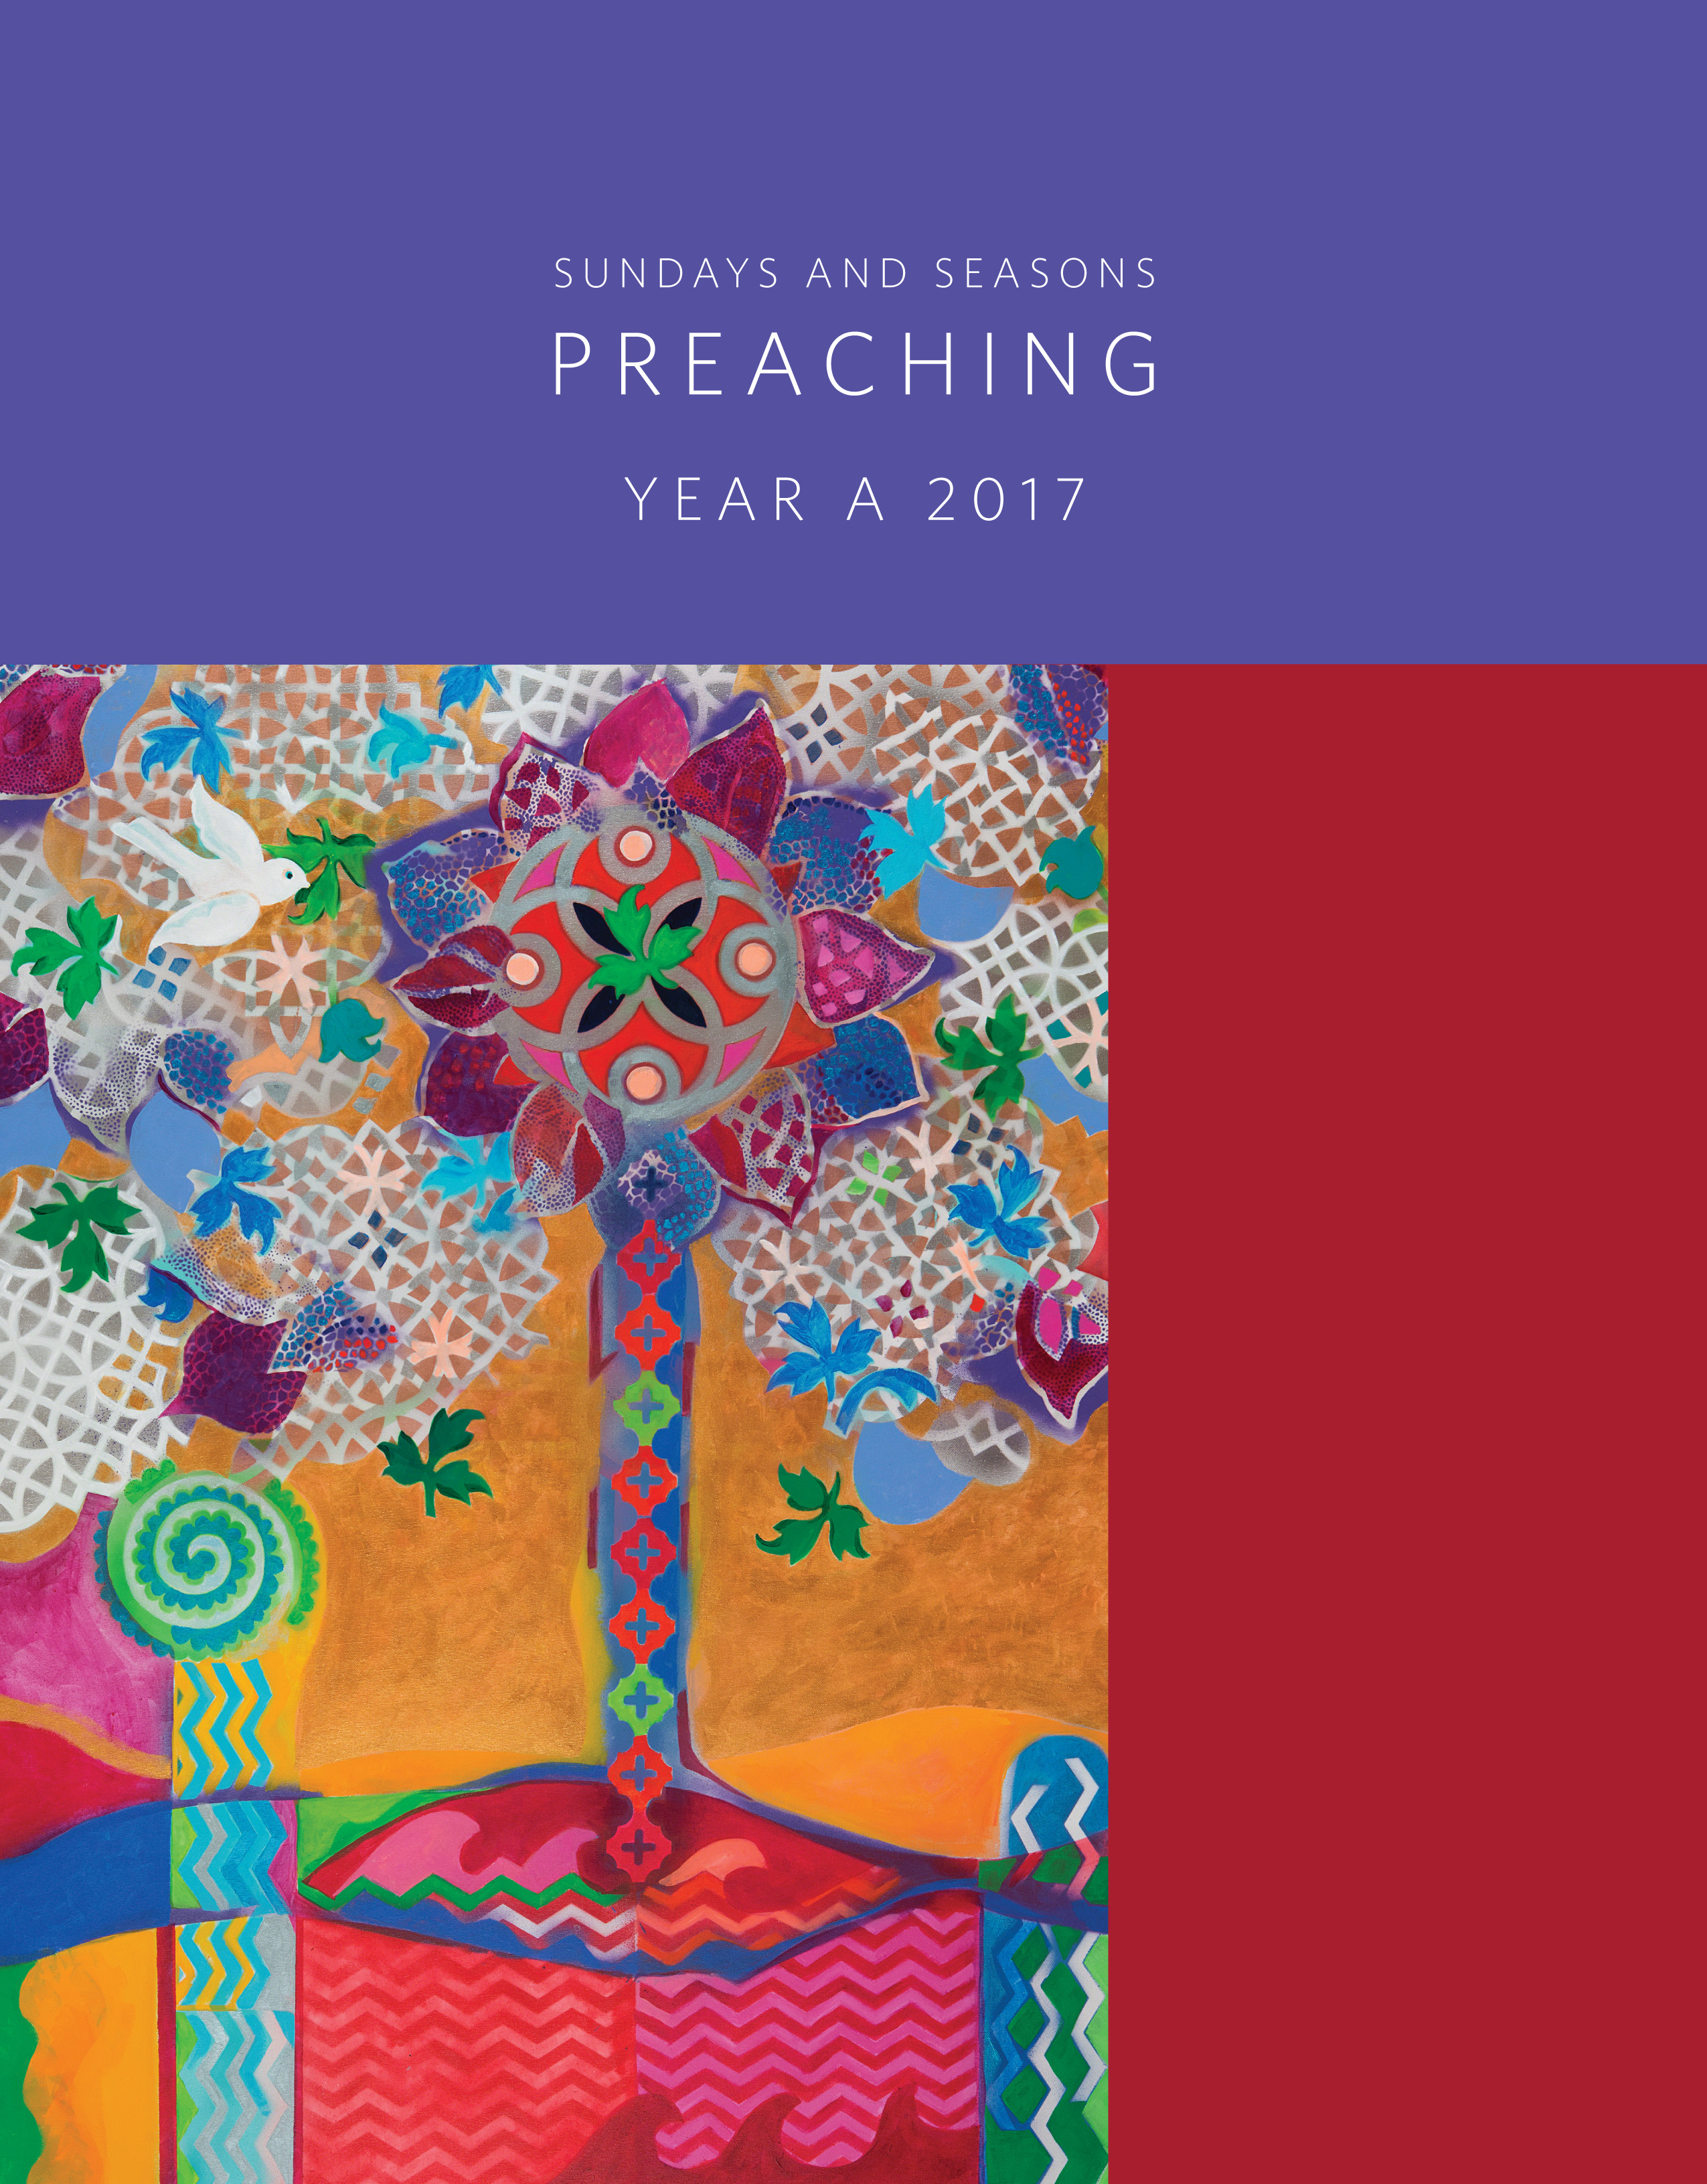 Sundays and Seasons: Preaching